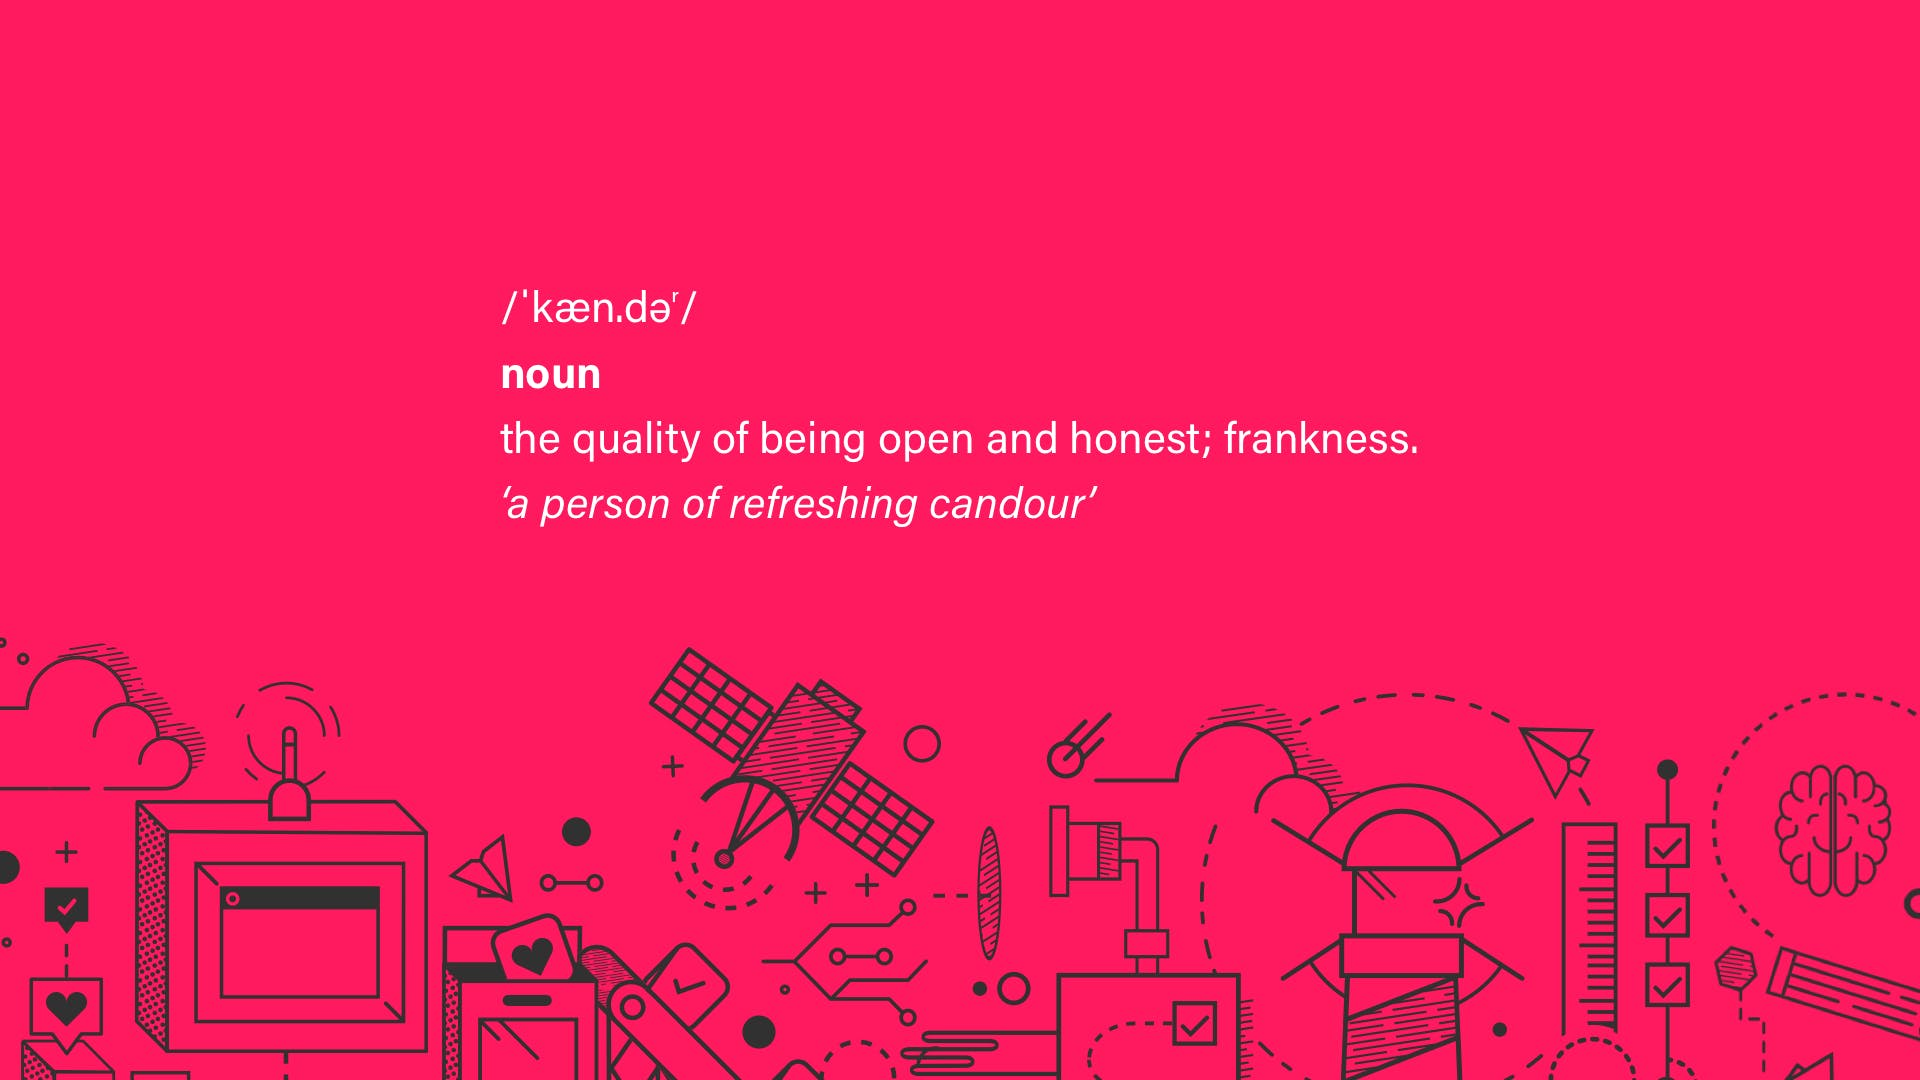 candour definition – the quality of being open and honest; frankness